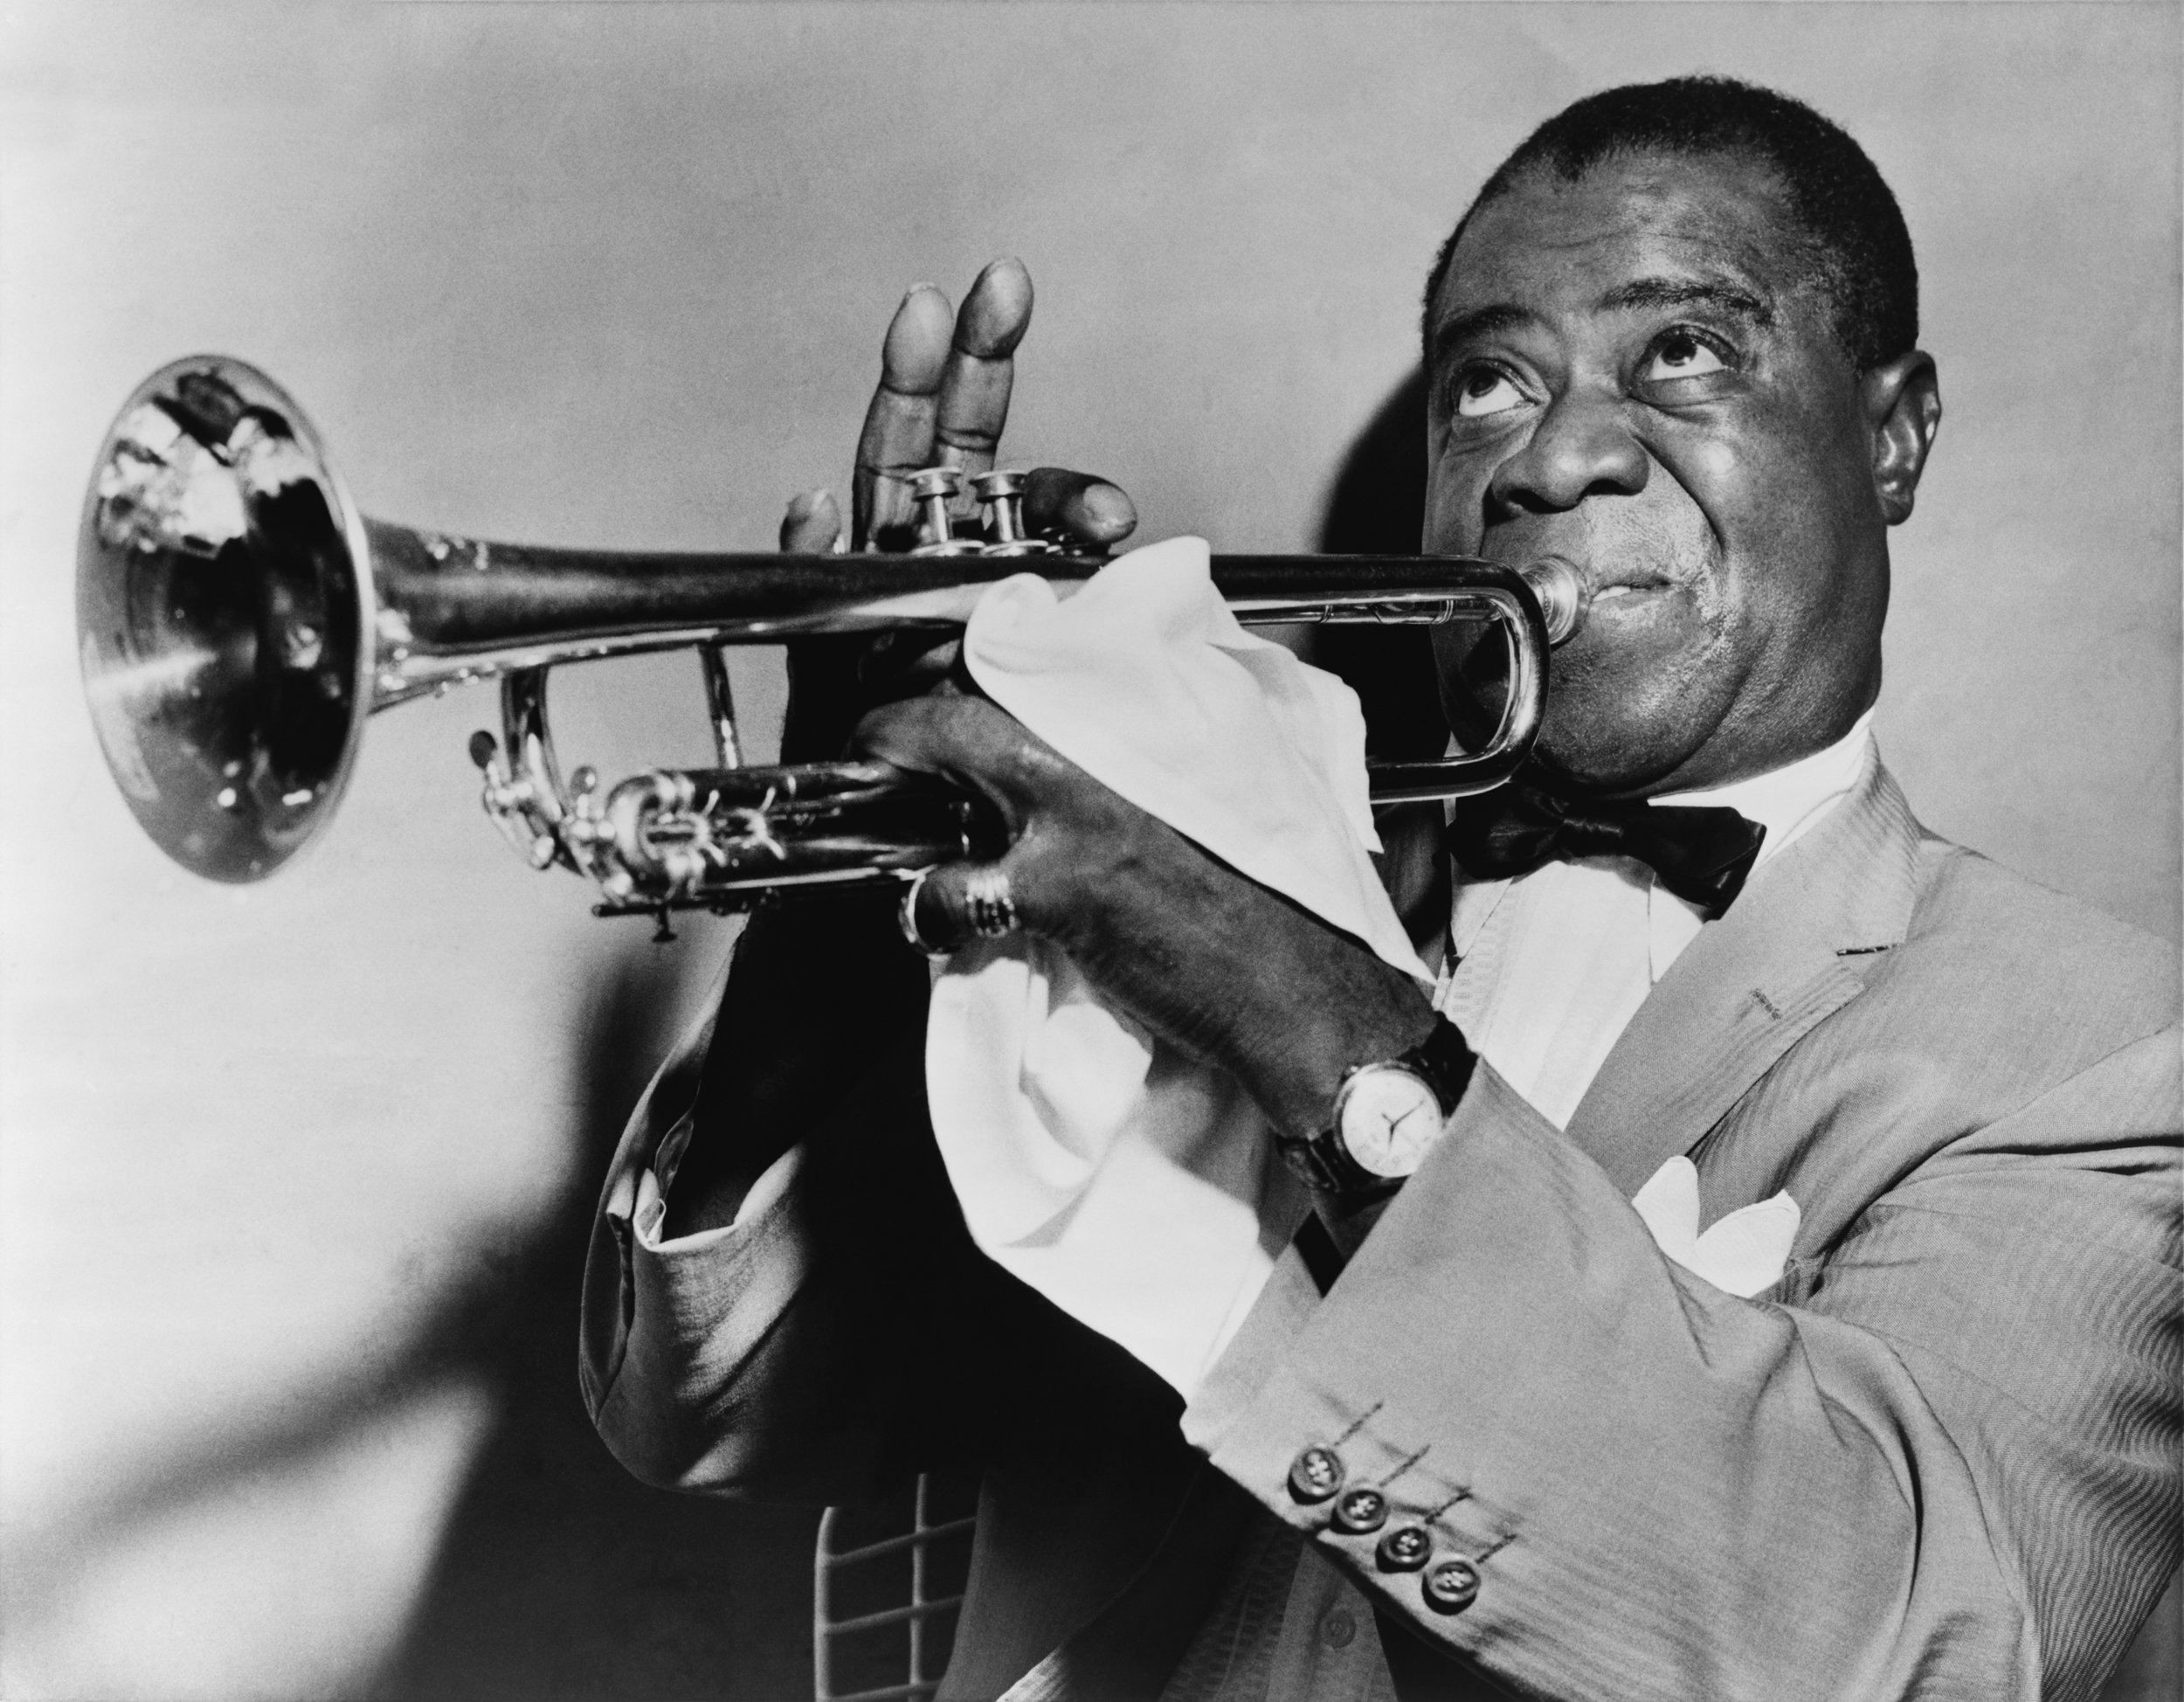 Louis Armstrong - one of the formative voices in Jazz